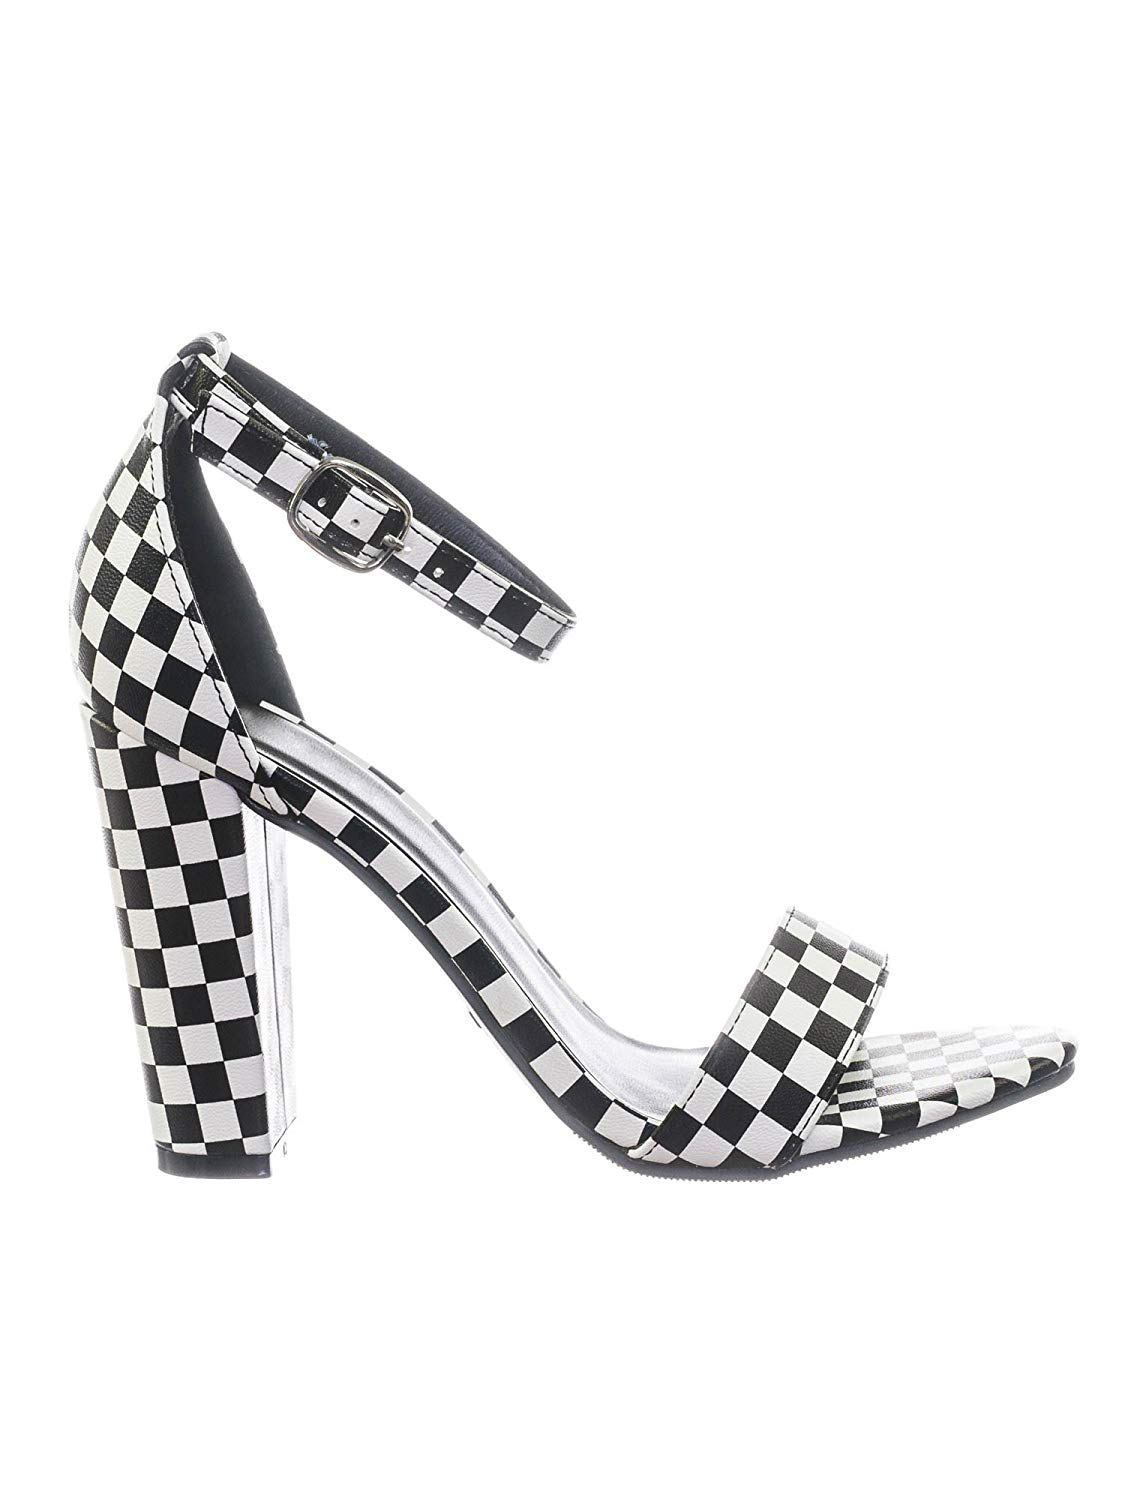 e08c0109ce8d0 Get Quotations · Aquapillar Chunky Block High Heel Dress Sandal w Ankle  Strap in Checkereboard